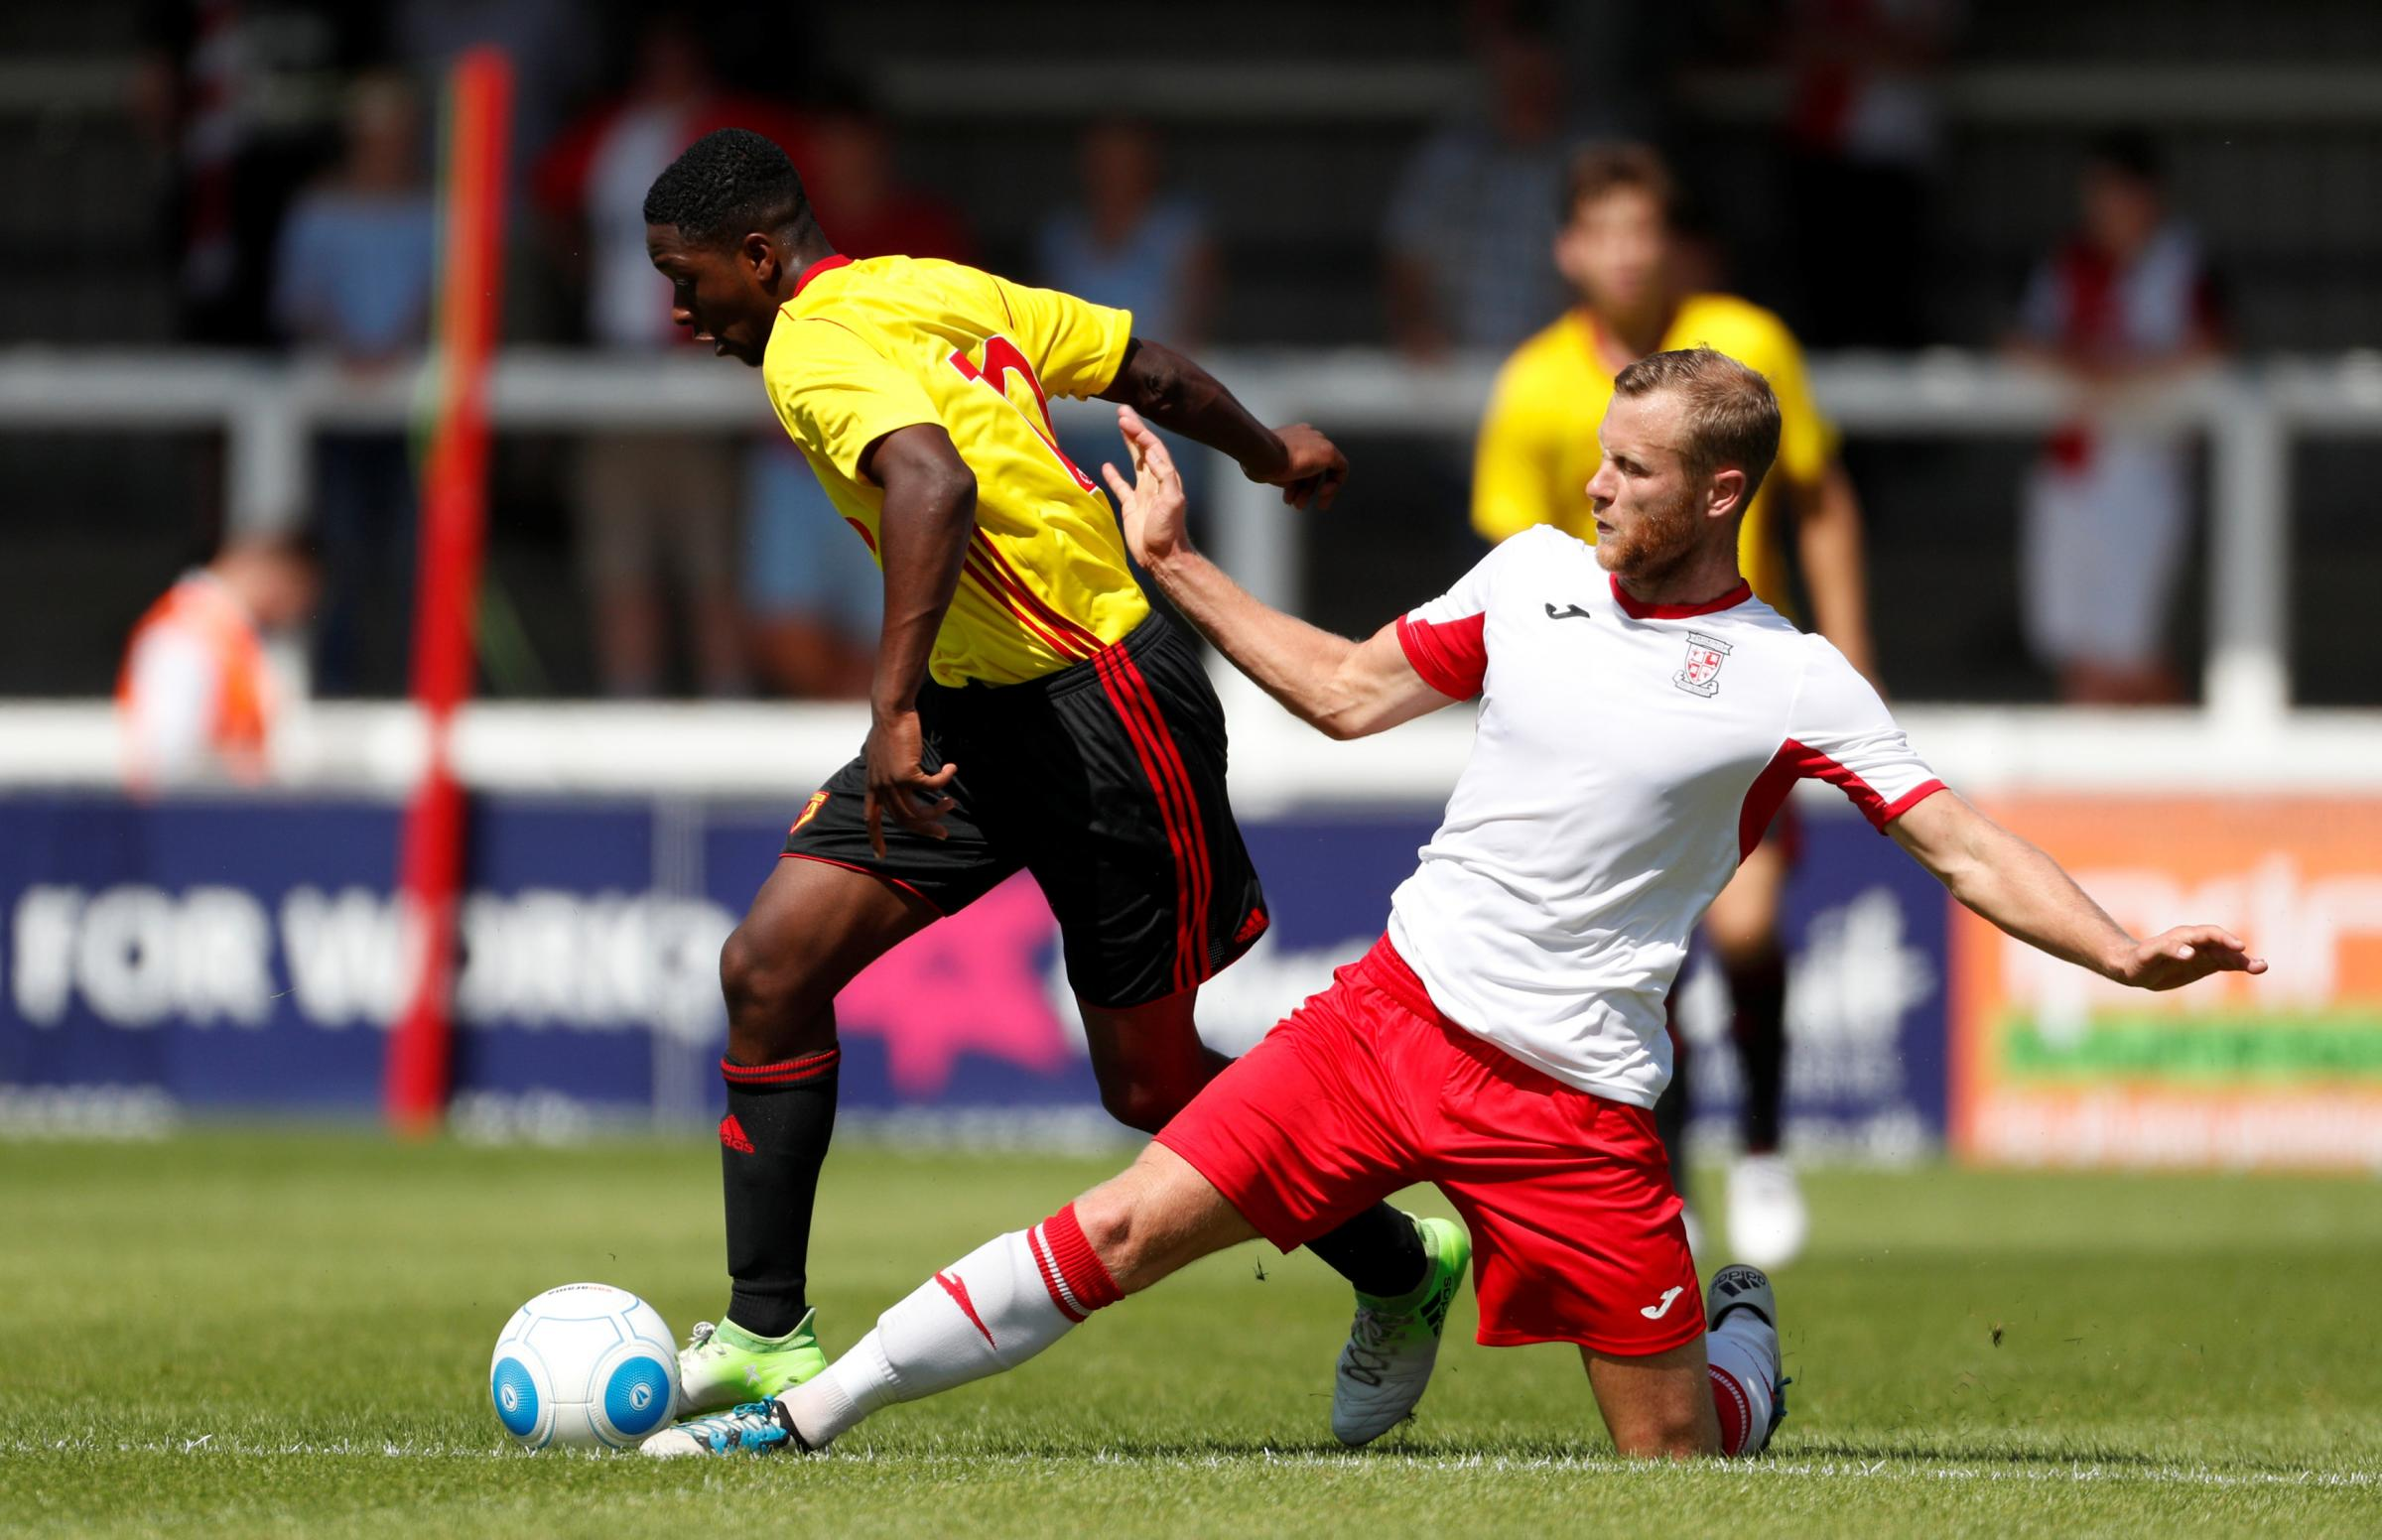 Michael Folivi scored again as Watford U23s picked up another win. Picture: Action Images